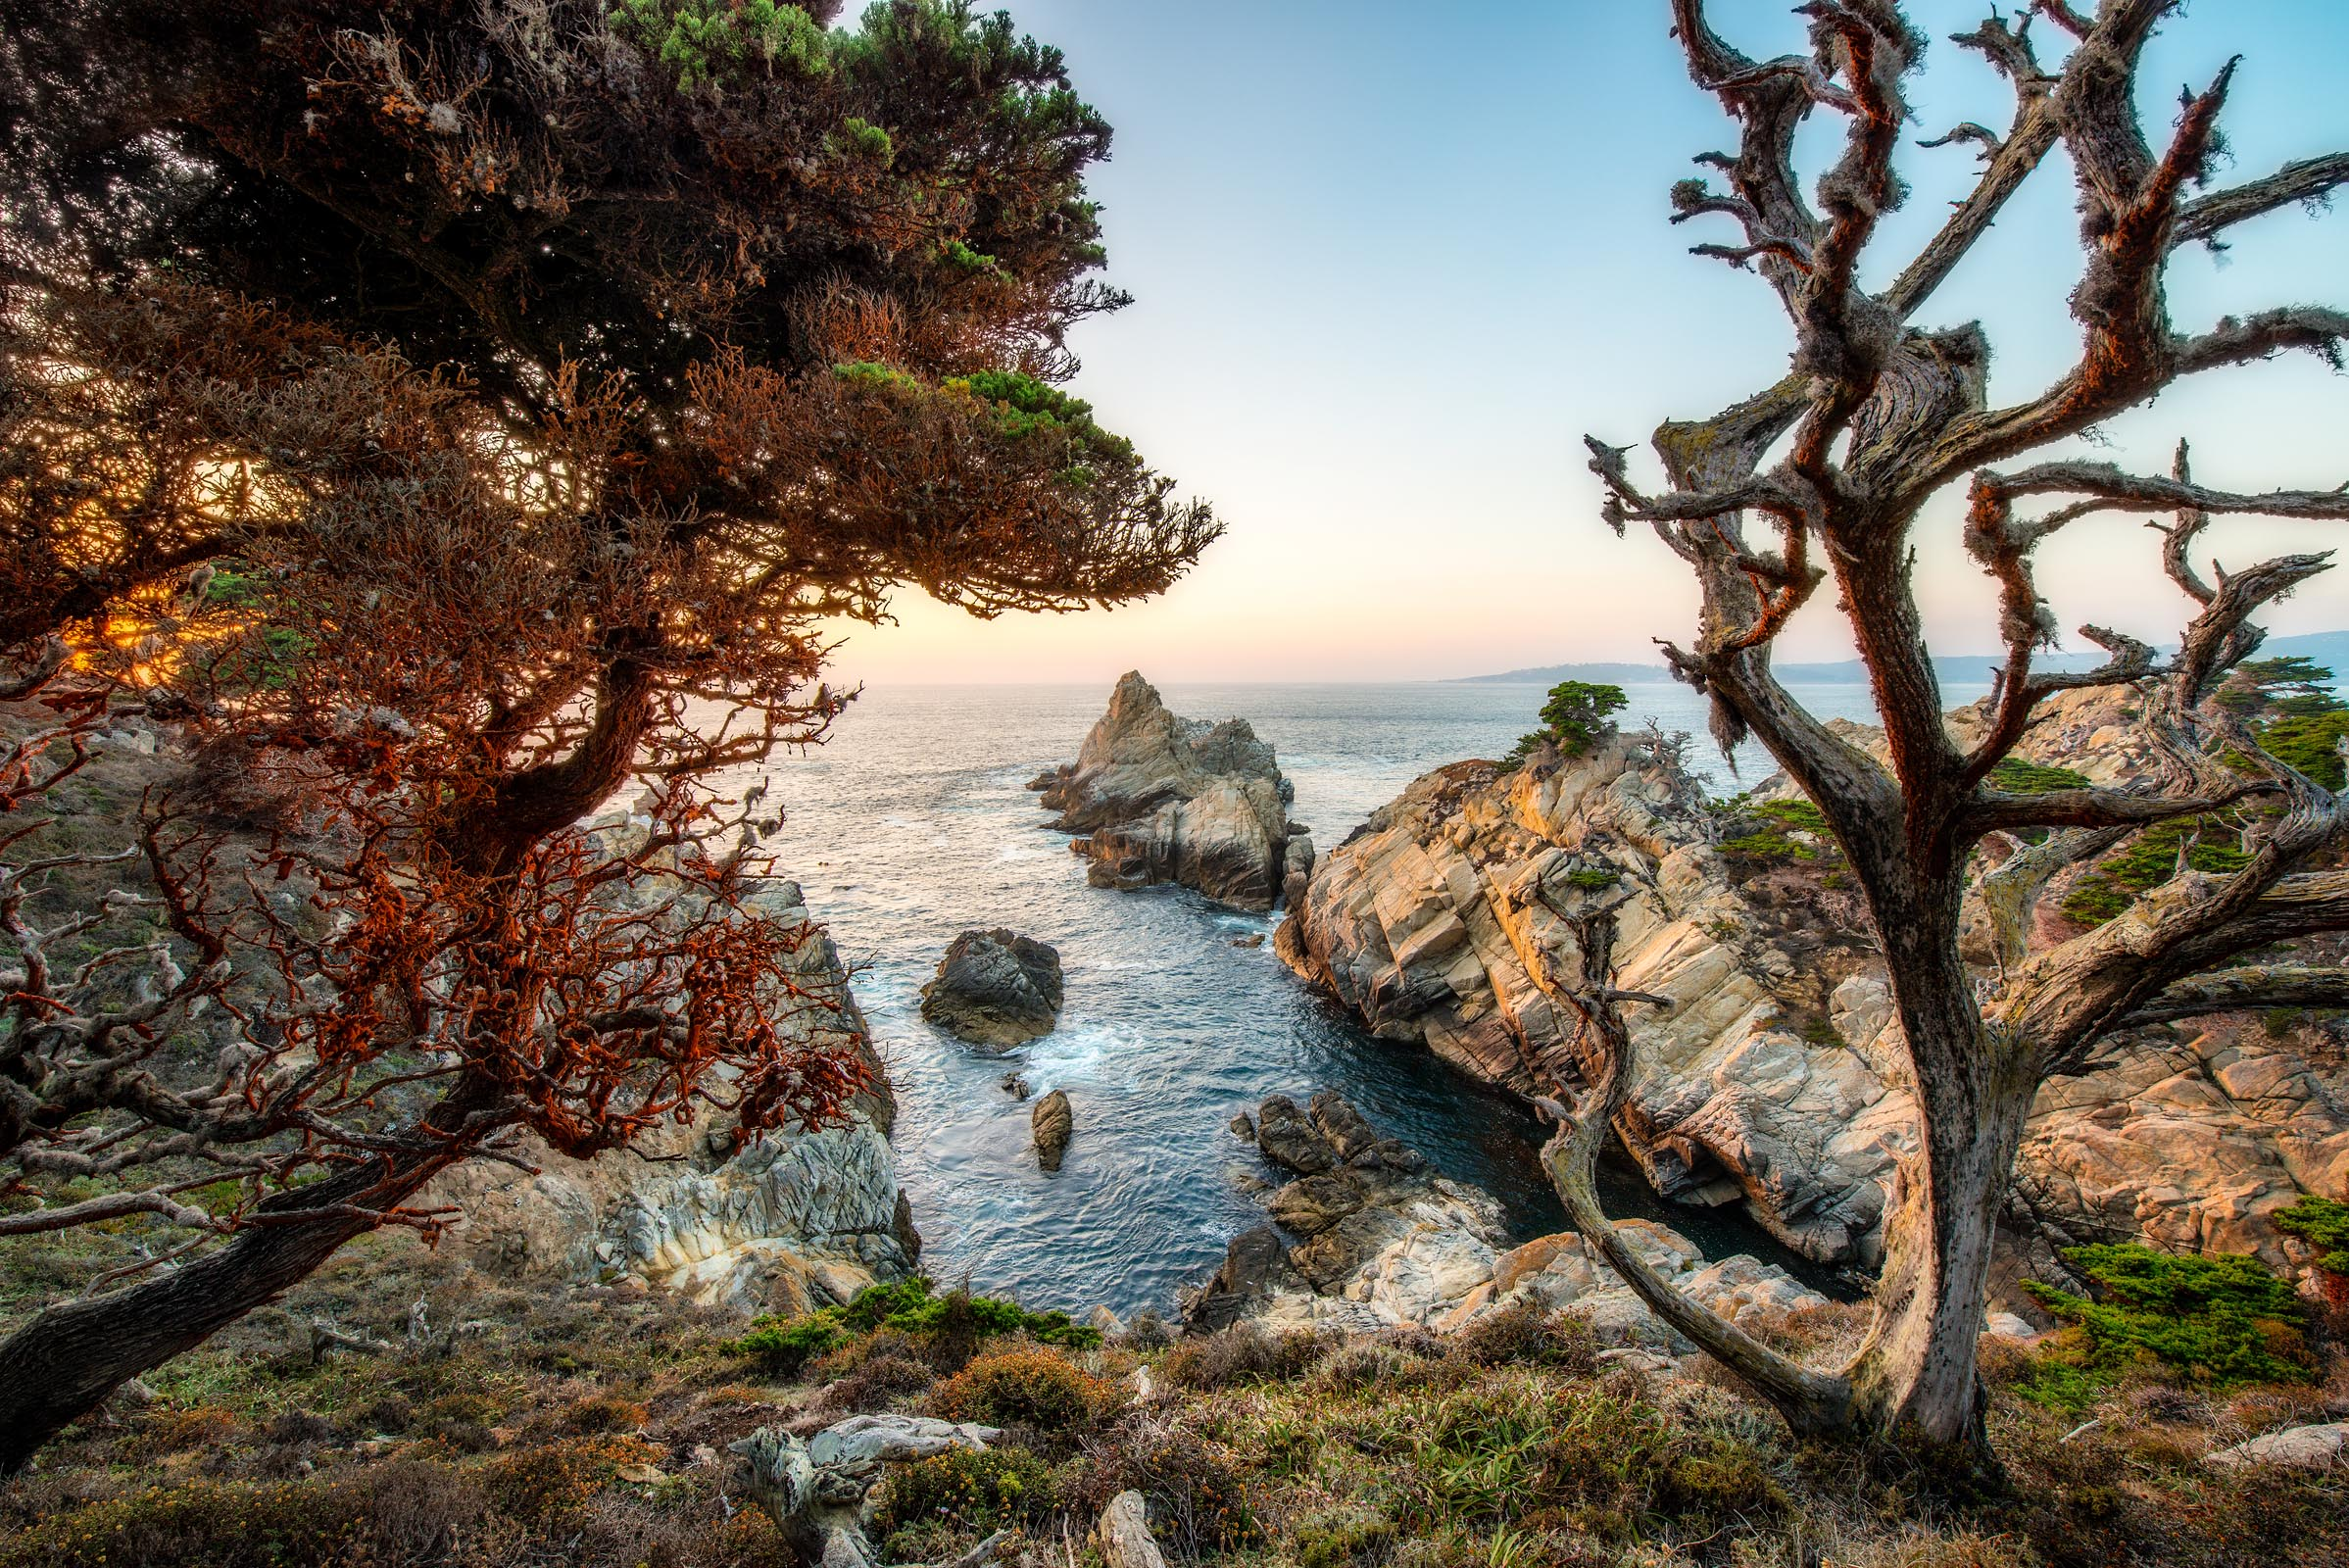 Photograph of Point Lobos in Carmel, California by Brent Goldman Photography